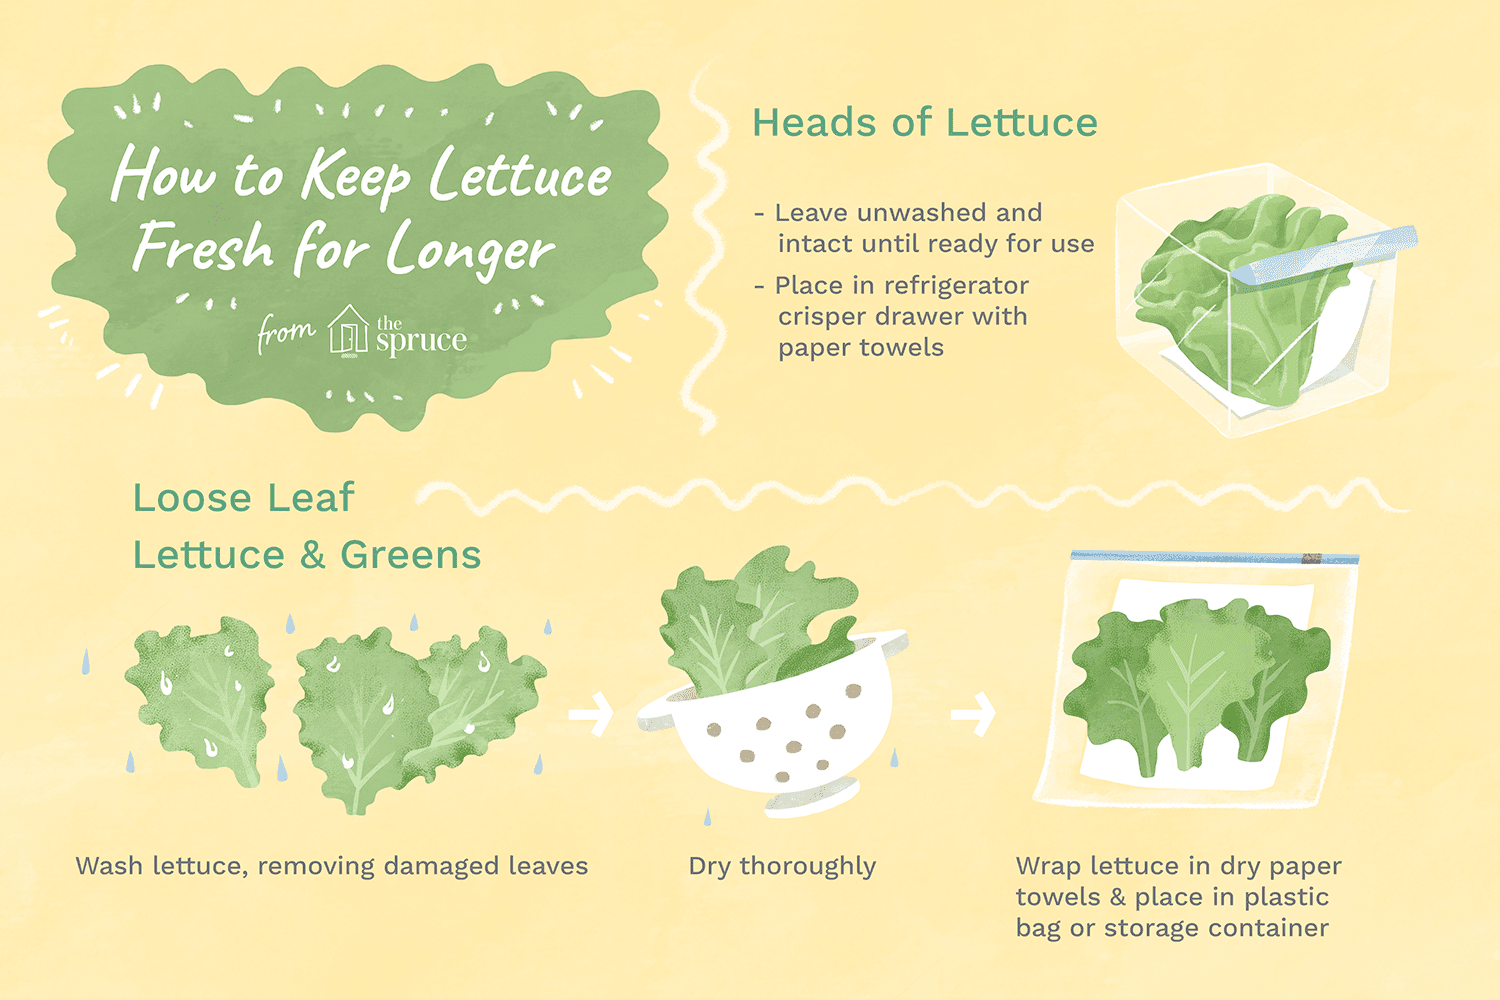 Illustration with details on how to keep lettuce fresh